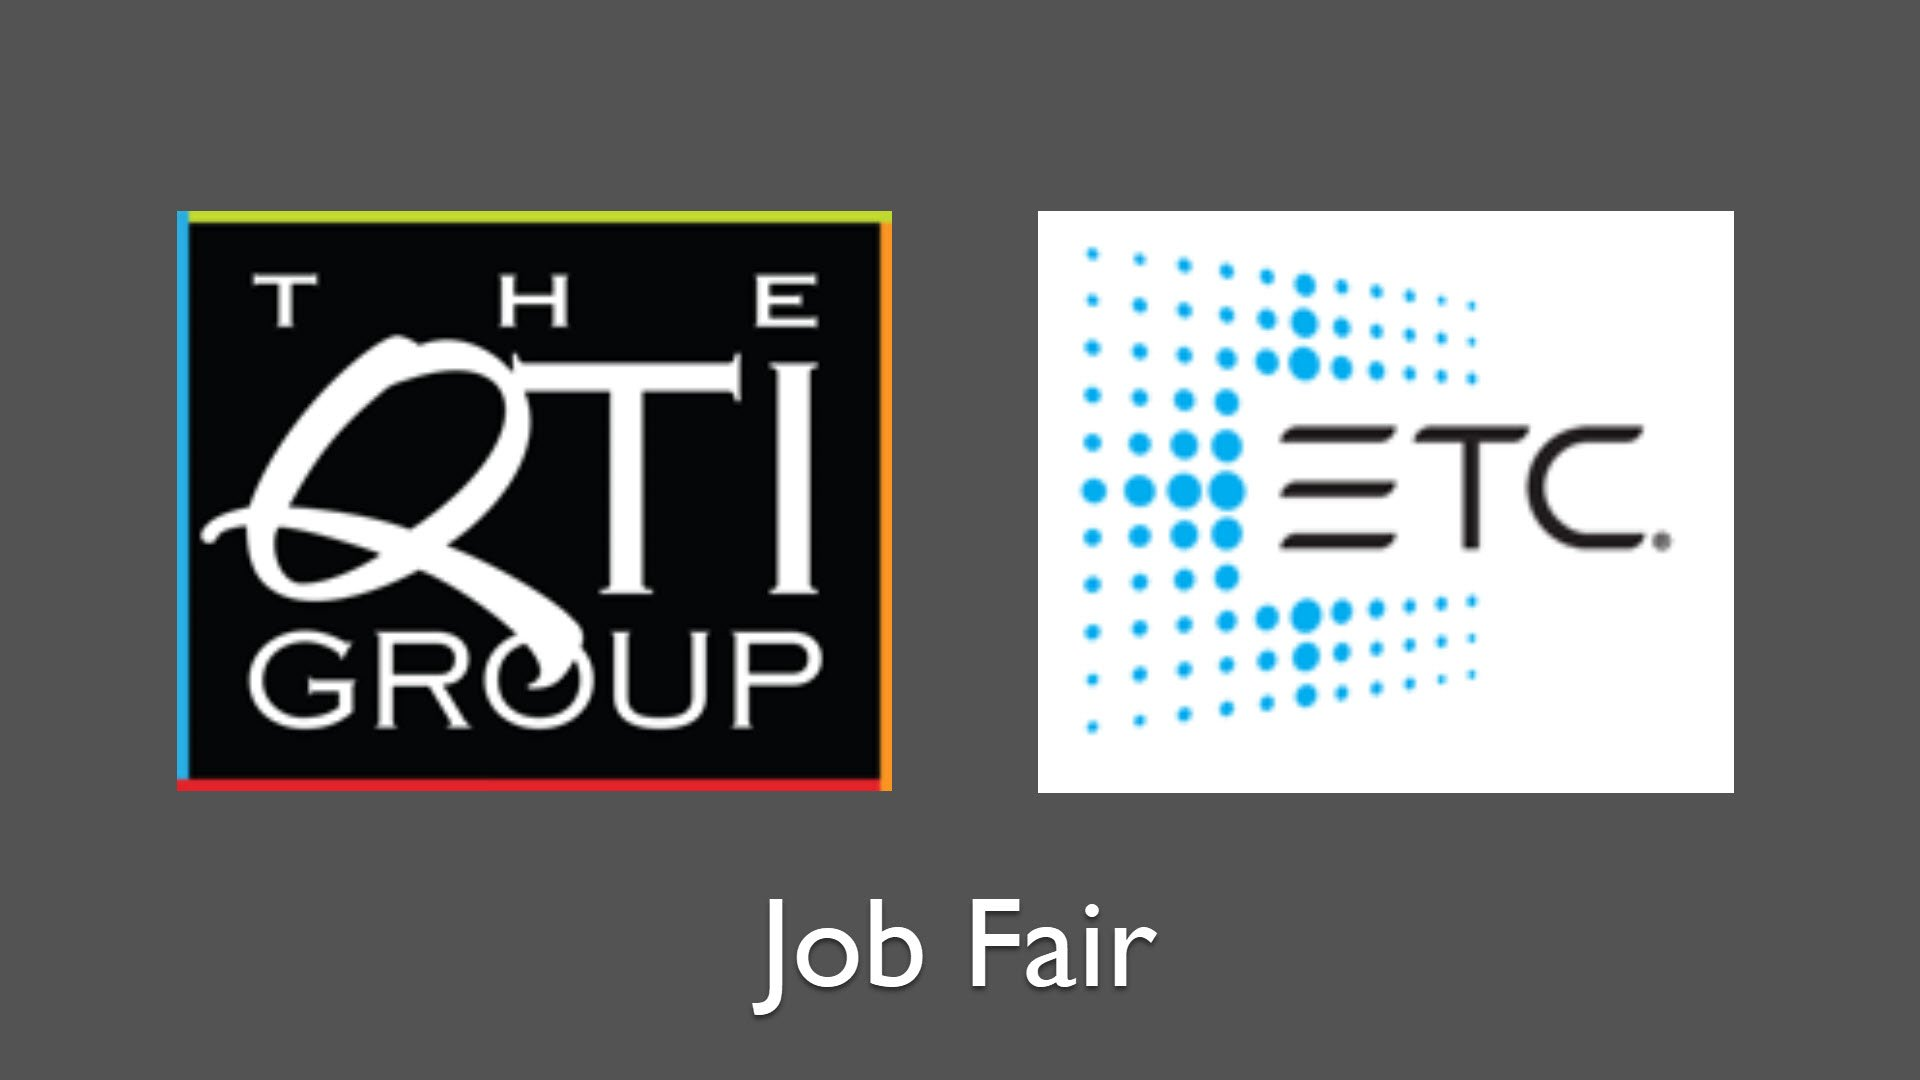 the qti group on twitter only one more day until we will be at etc in middleton don t miss this chance to work with a fun and cutting edge company https t co igiwnesu9a https t co i2p6ovhx2c twitter